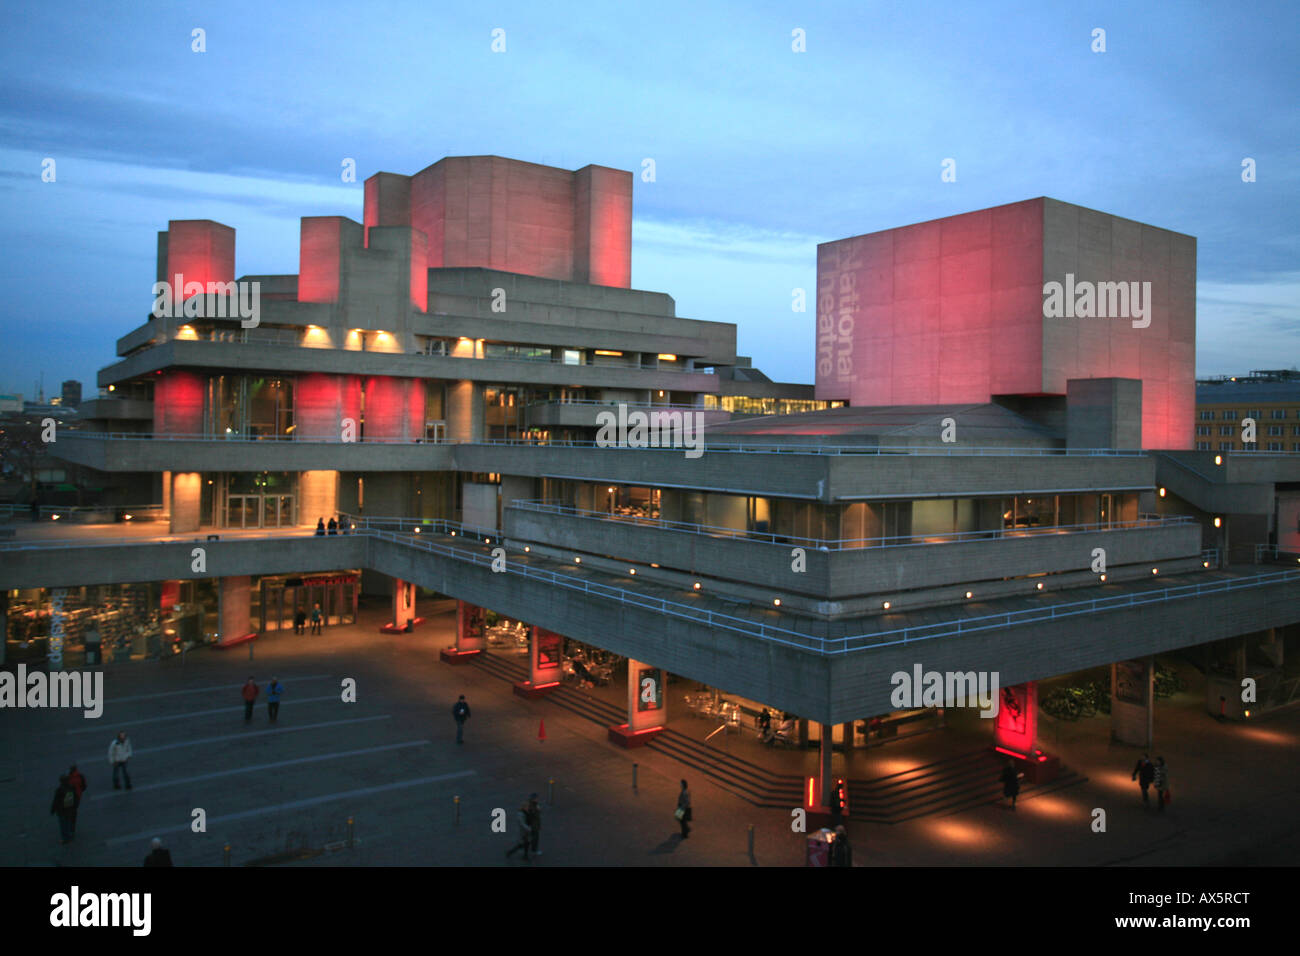 National Theatre on the shore of the Thames River, London, England, UK, Europe - Stock Image